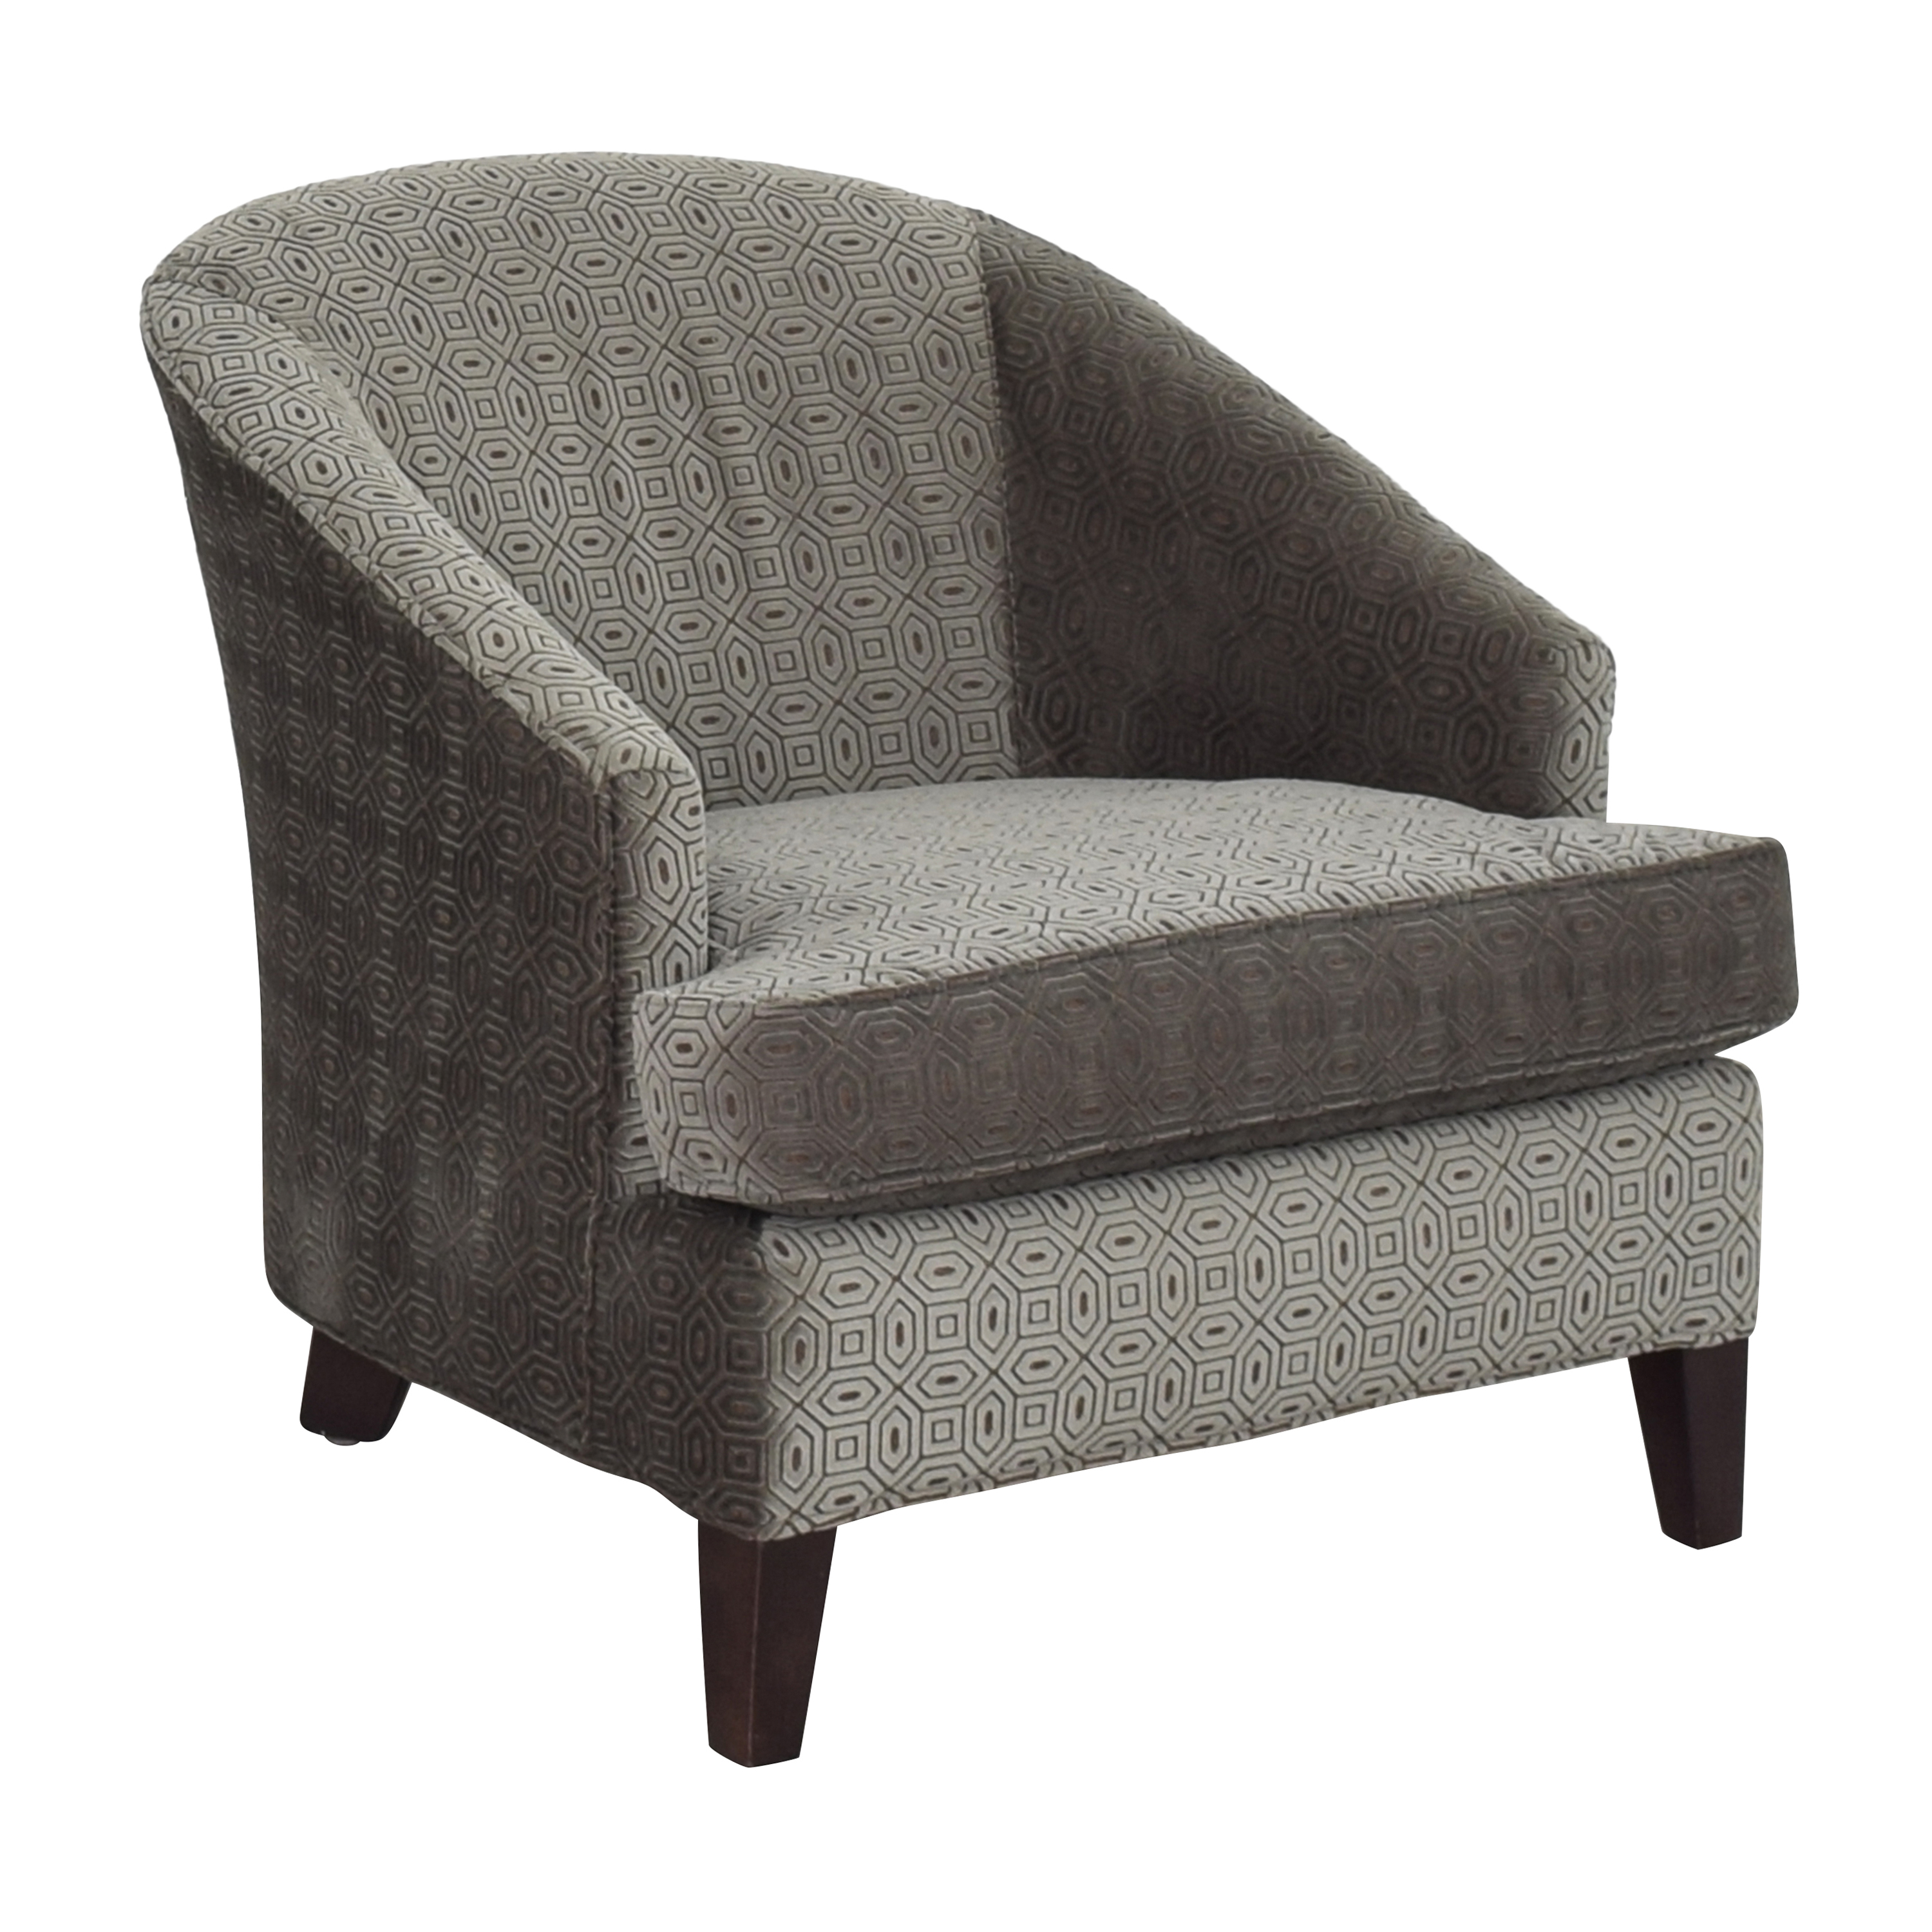 Mitchell Gold + Bob Williams Accent Chair / Accent Chairs